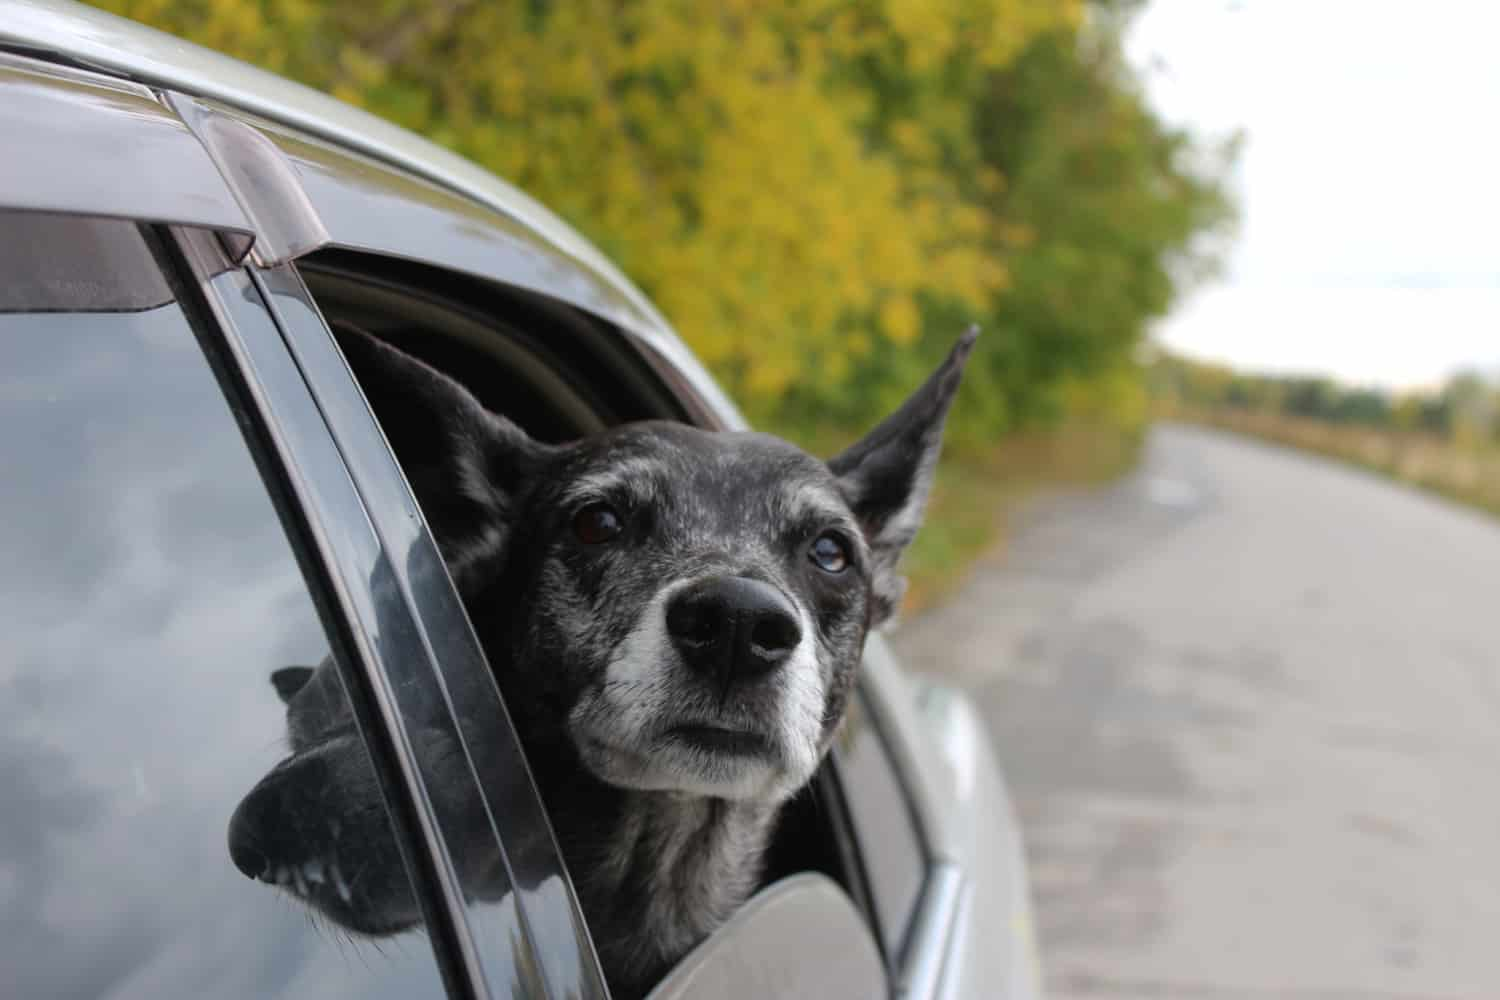 Elderly dog looking out a car window